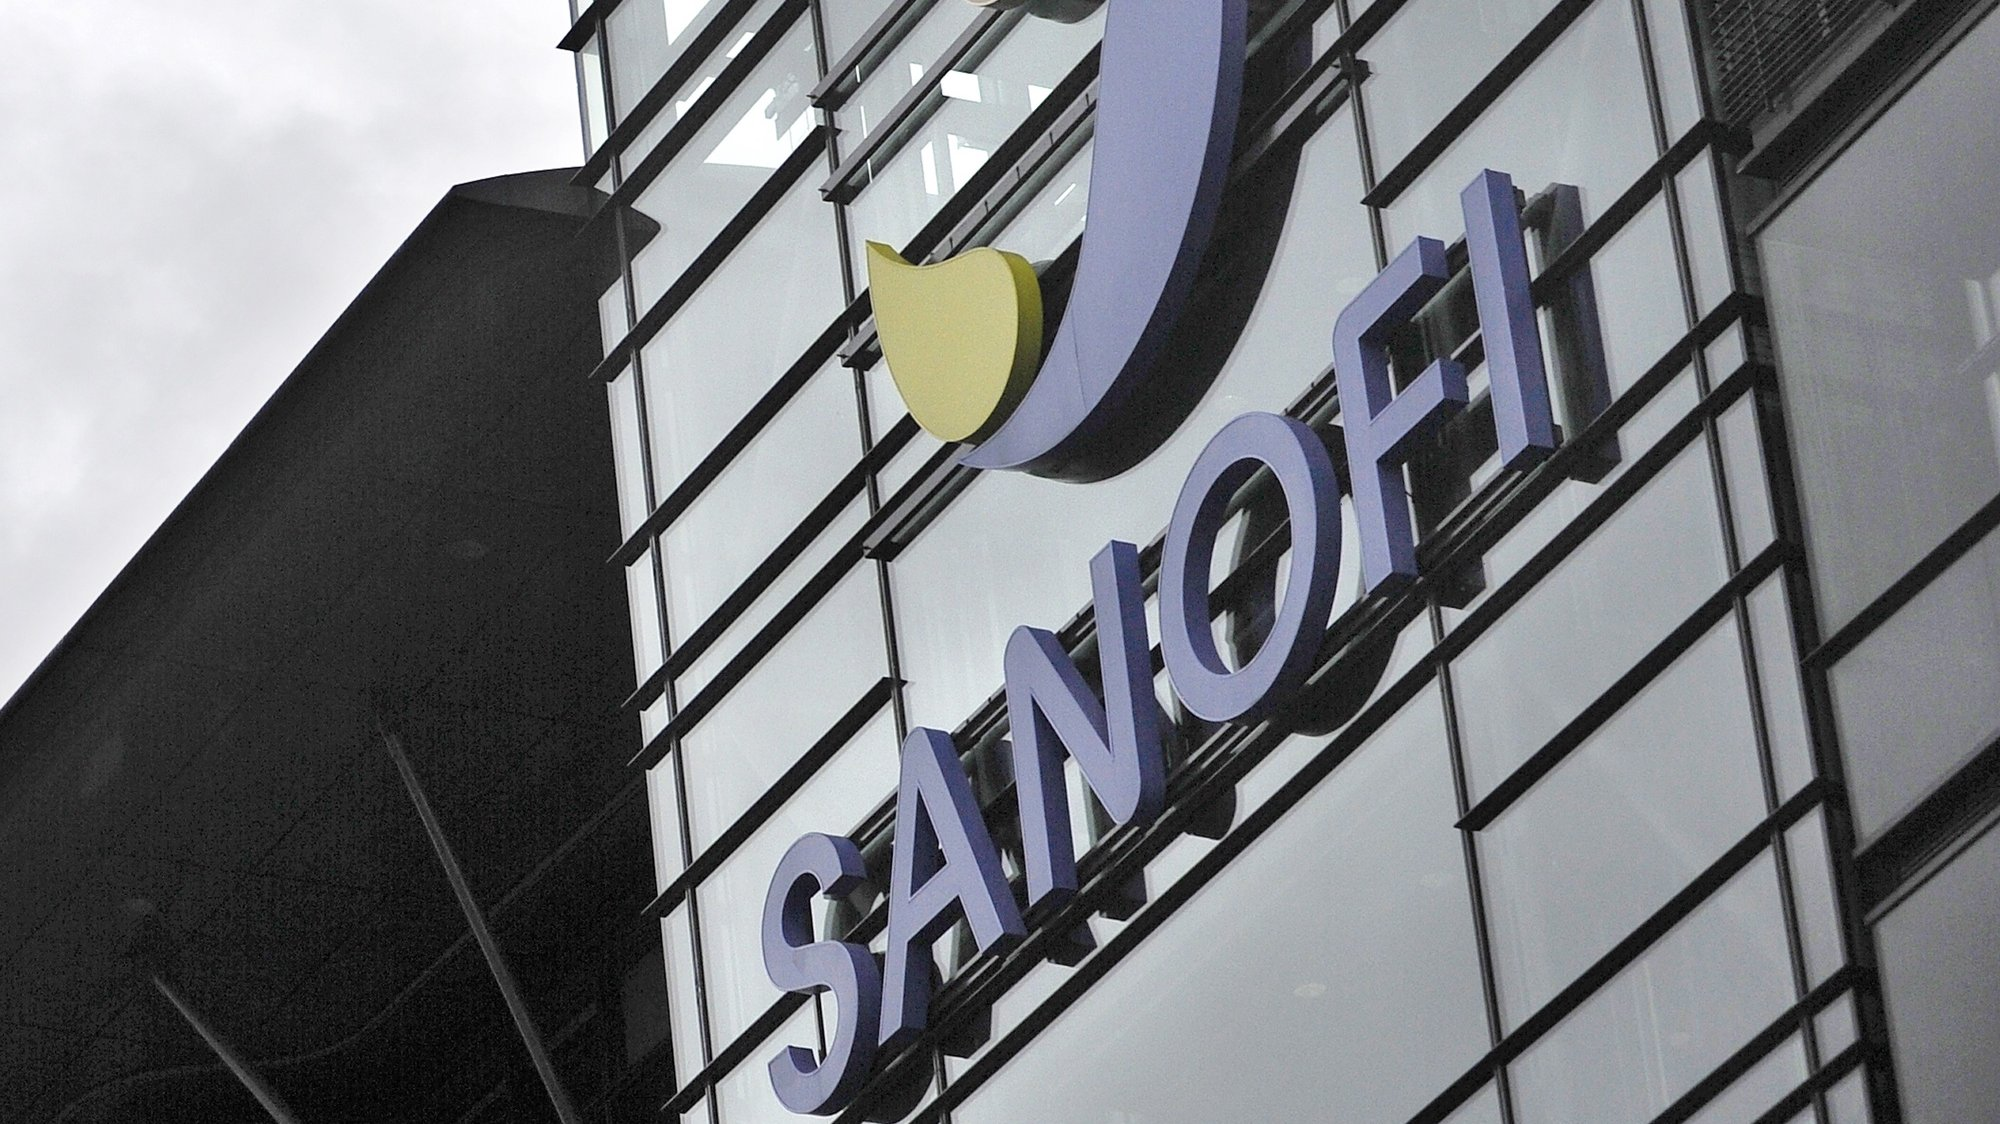 epa08876616 (FILE) - A general view of the drug manufacturer Sanofi's office in Paris, France, 25 September 2012 (reissued 11 December 2020). France's Sanofi and Britain's GSK announced on 11 December that their Covid-19 vaccines will not be ready until the end of 2021 following a low immune response in older adults.  EPA/YOAN VALAT